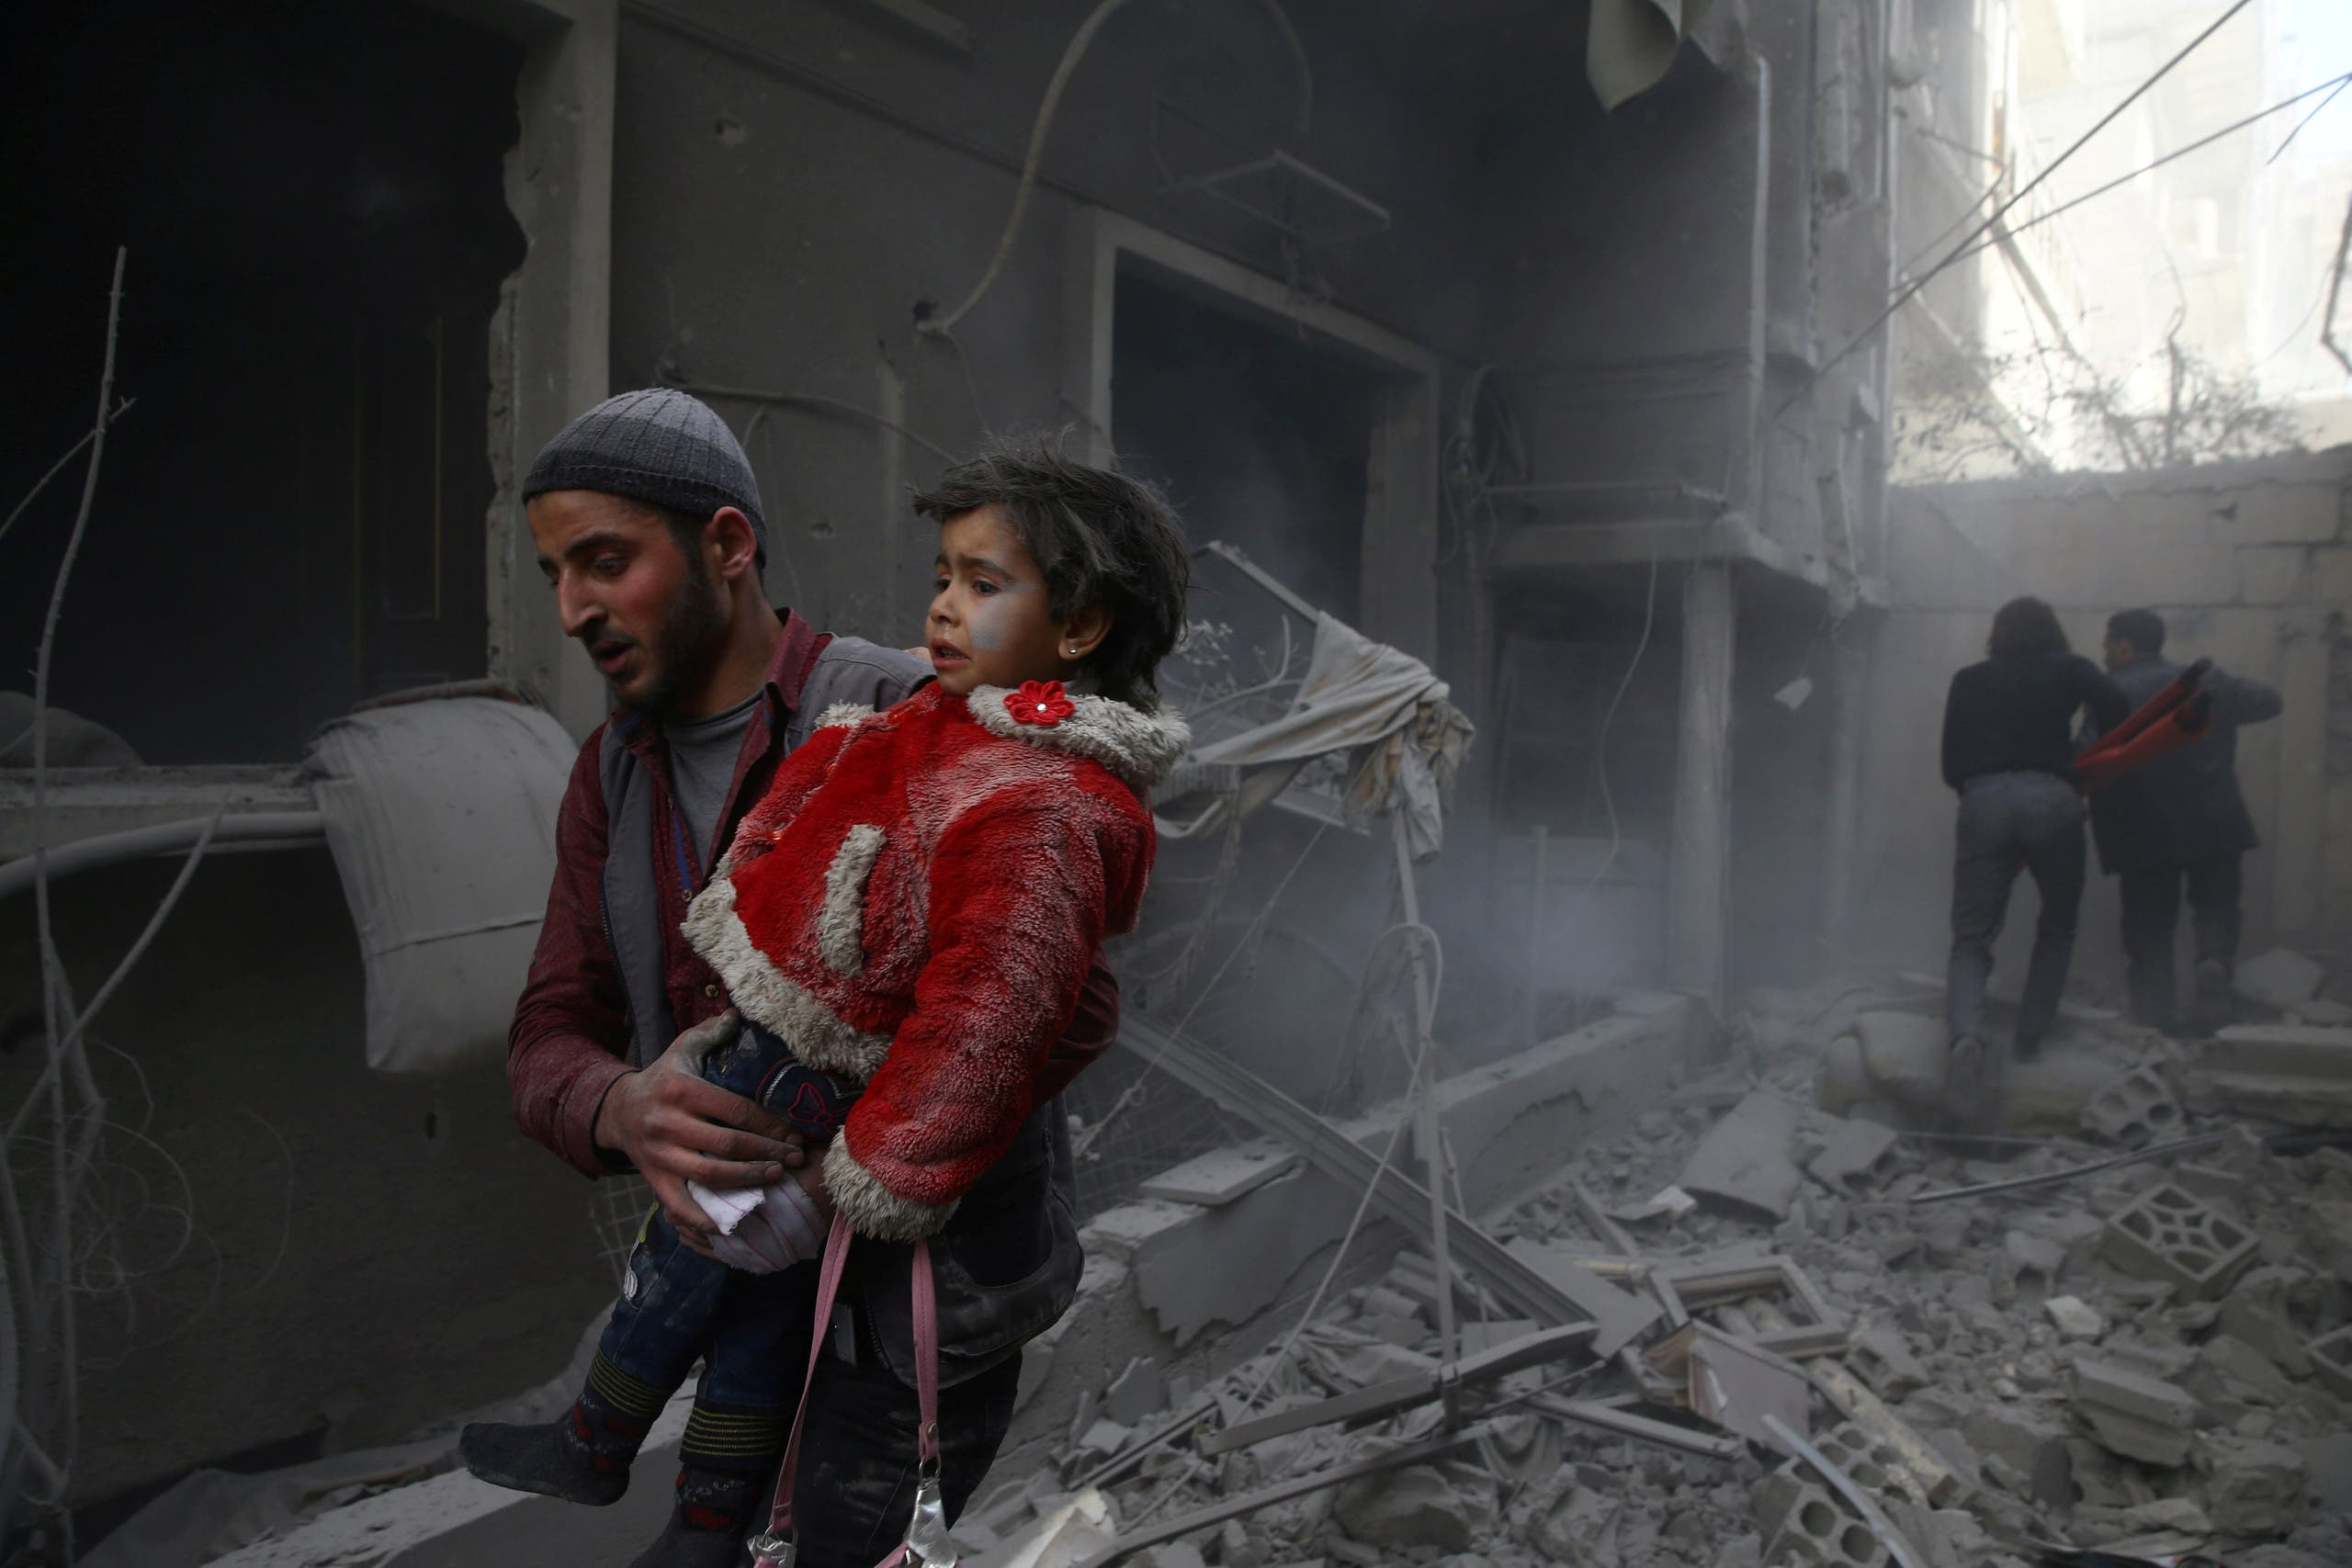 A man holds a child after an airstrike in the besieged town of Douma on February 7, 2018. (Reuters)